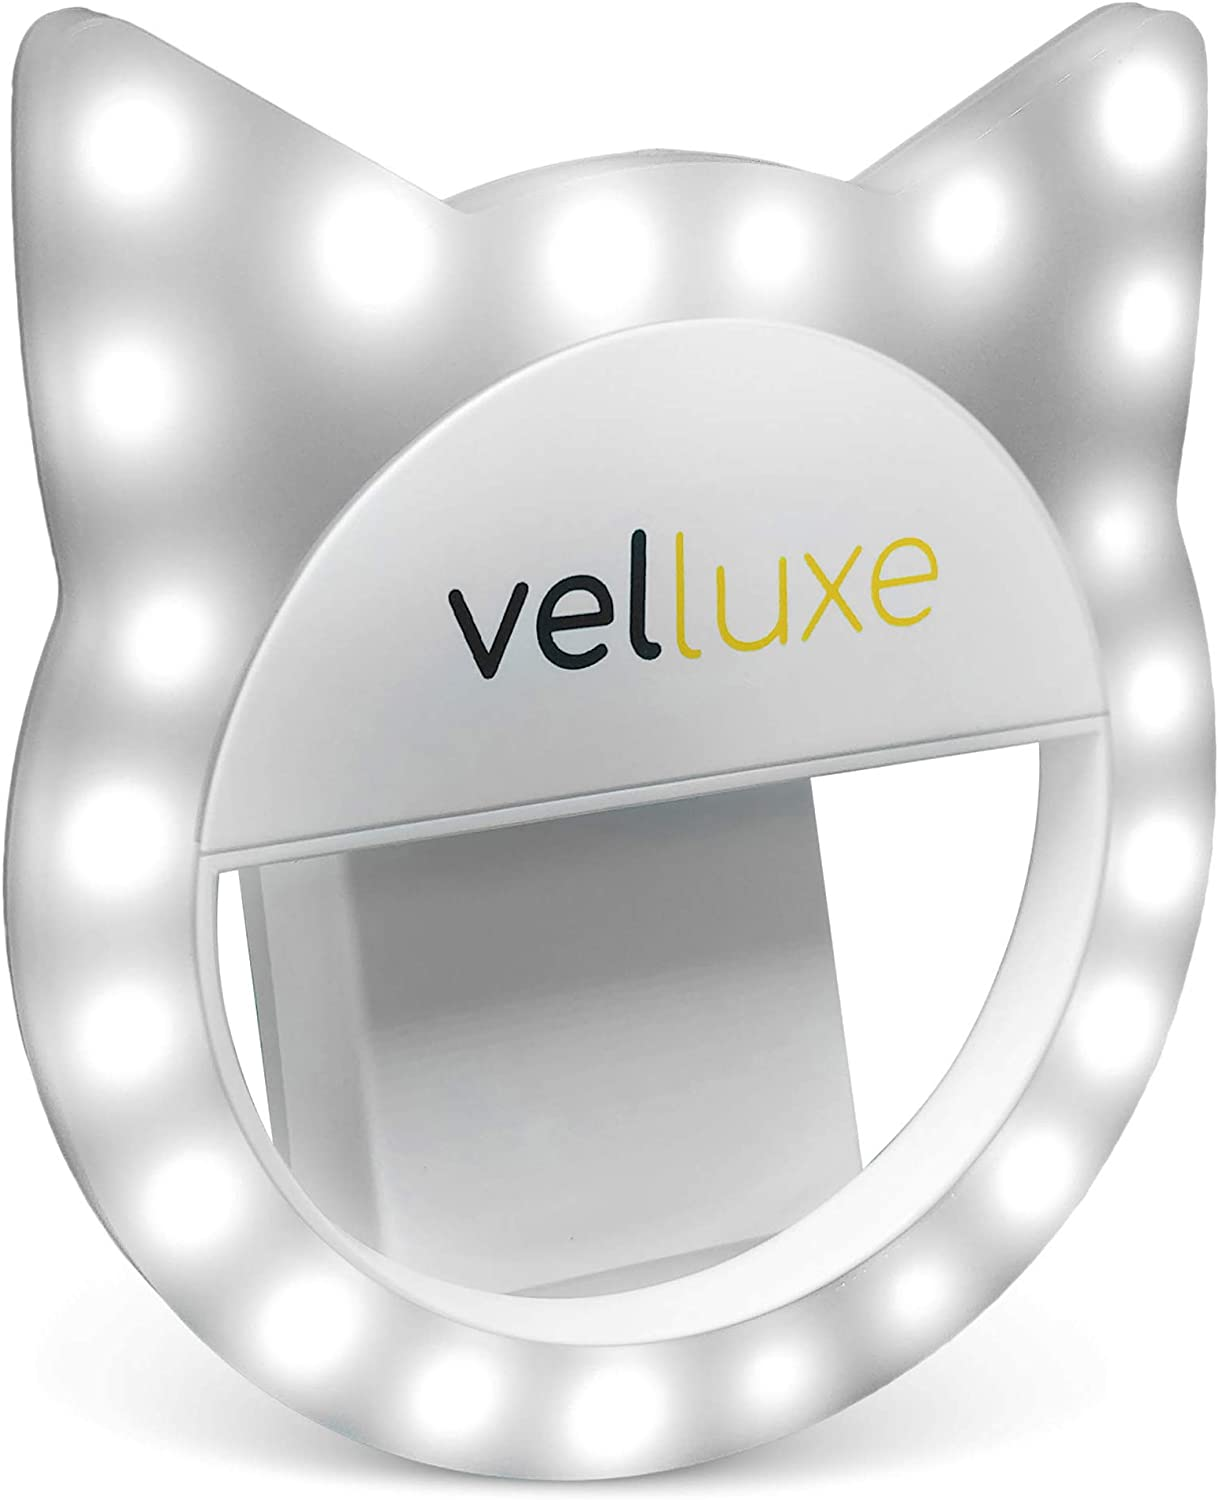 velluxe Clip On Selfie Light - Portable Ring Light for Laptop iPhone/Android Smart Cell Phone Photography Makeup Mirror Zoom, 3 Different Brightness Levels